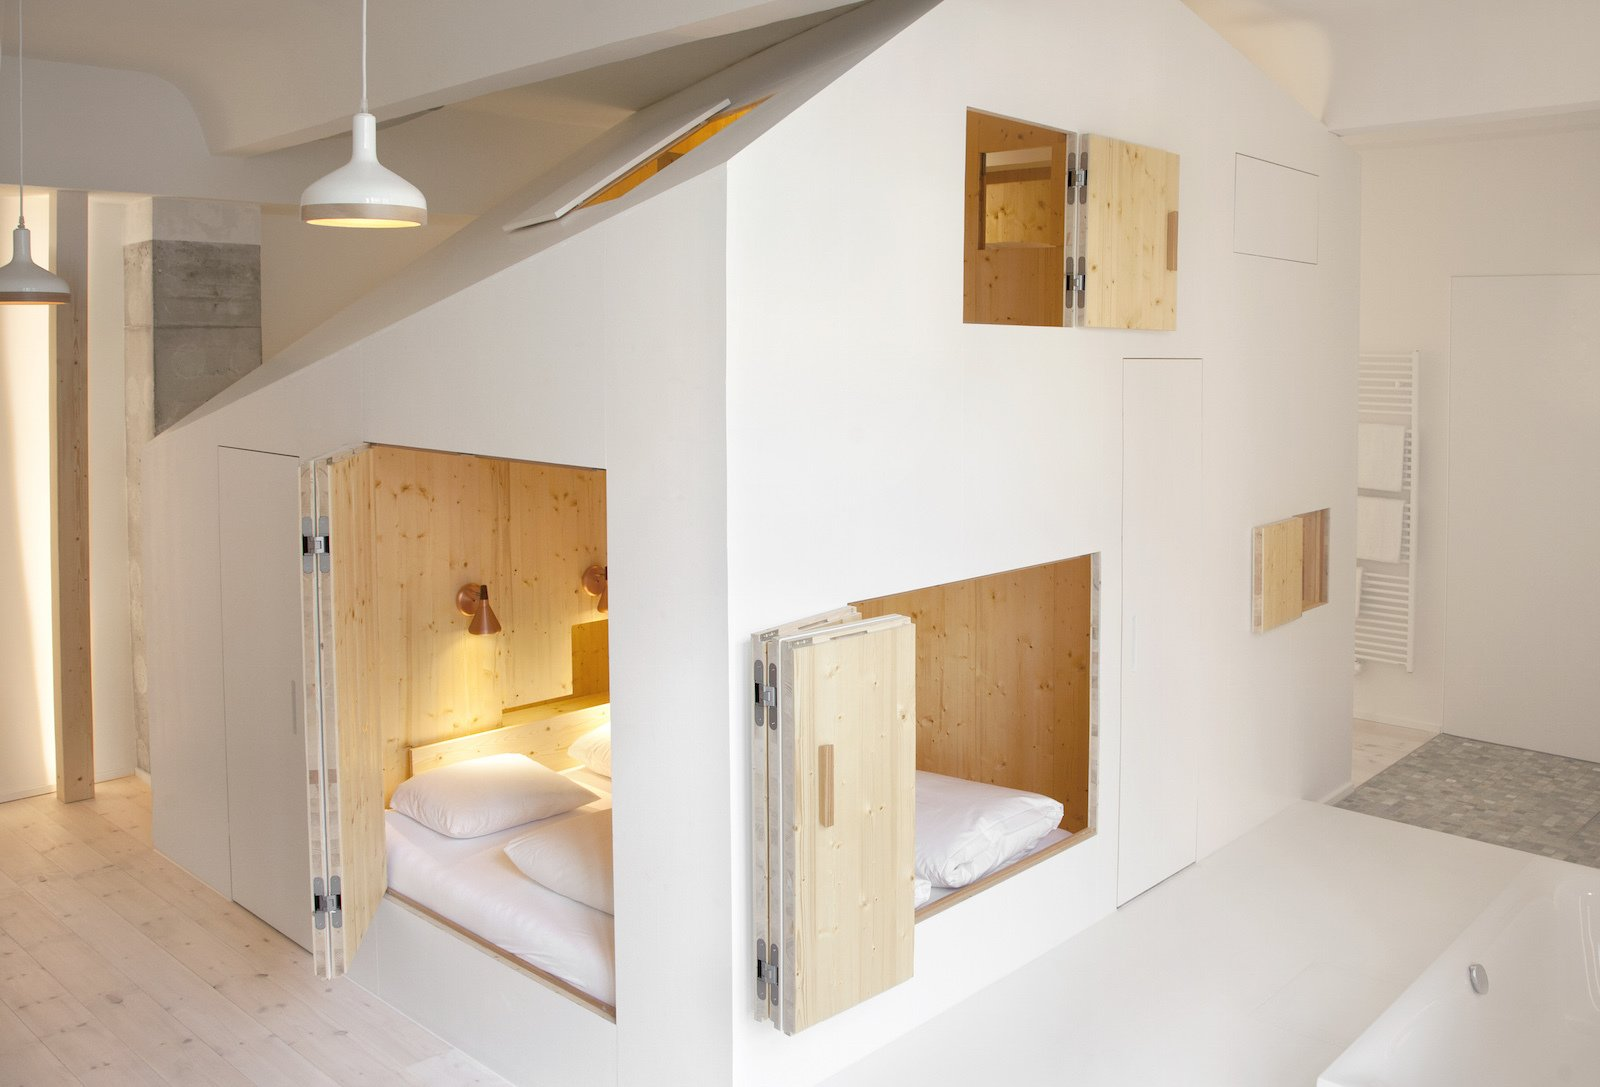 Bedroom, Pendant Lighting, Bed, Wall Lighting, and Light Hardwood Floor Following the house-within-a-house concept, this playful playhouse-like addition features an all-plywood interior.  Photos from Stoke Your Imagination With This Playhouse-Like Suite in Berlin